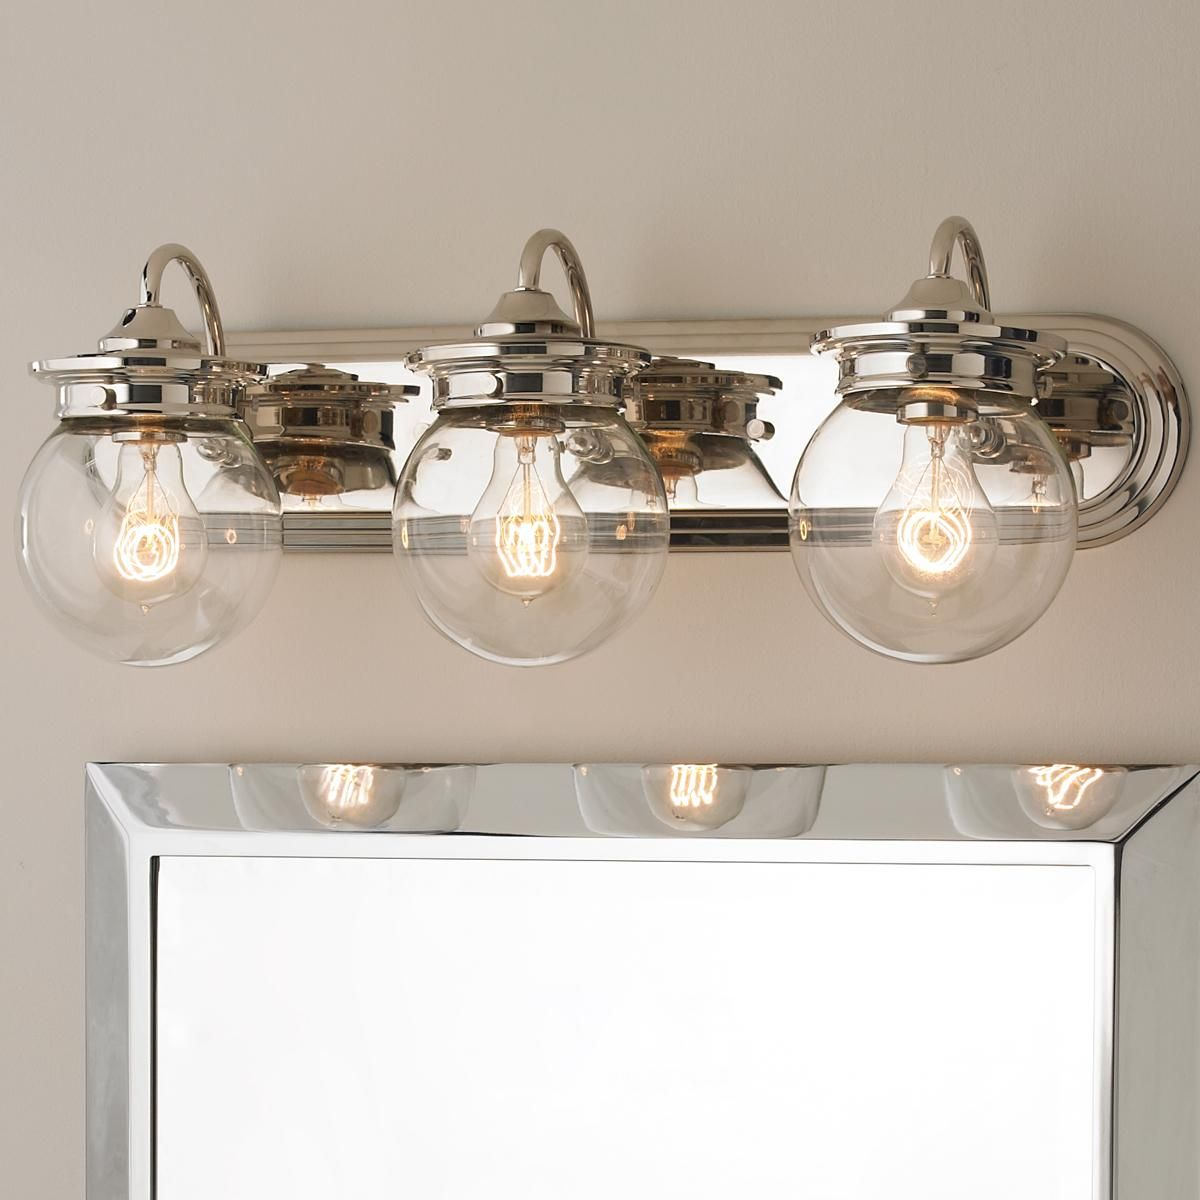 Traditional bathroom lighting Ceiling Traditional Clear Glass Globe Bath Light Light Traditional Details Combine With Modern Round Globe Clear Glass Sconce In Shiny Polished Nickel Pinterest Traditional Clear Glass Globe Bath Light Light Traditional